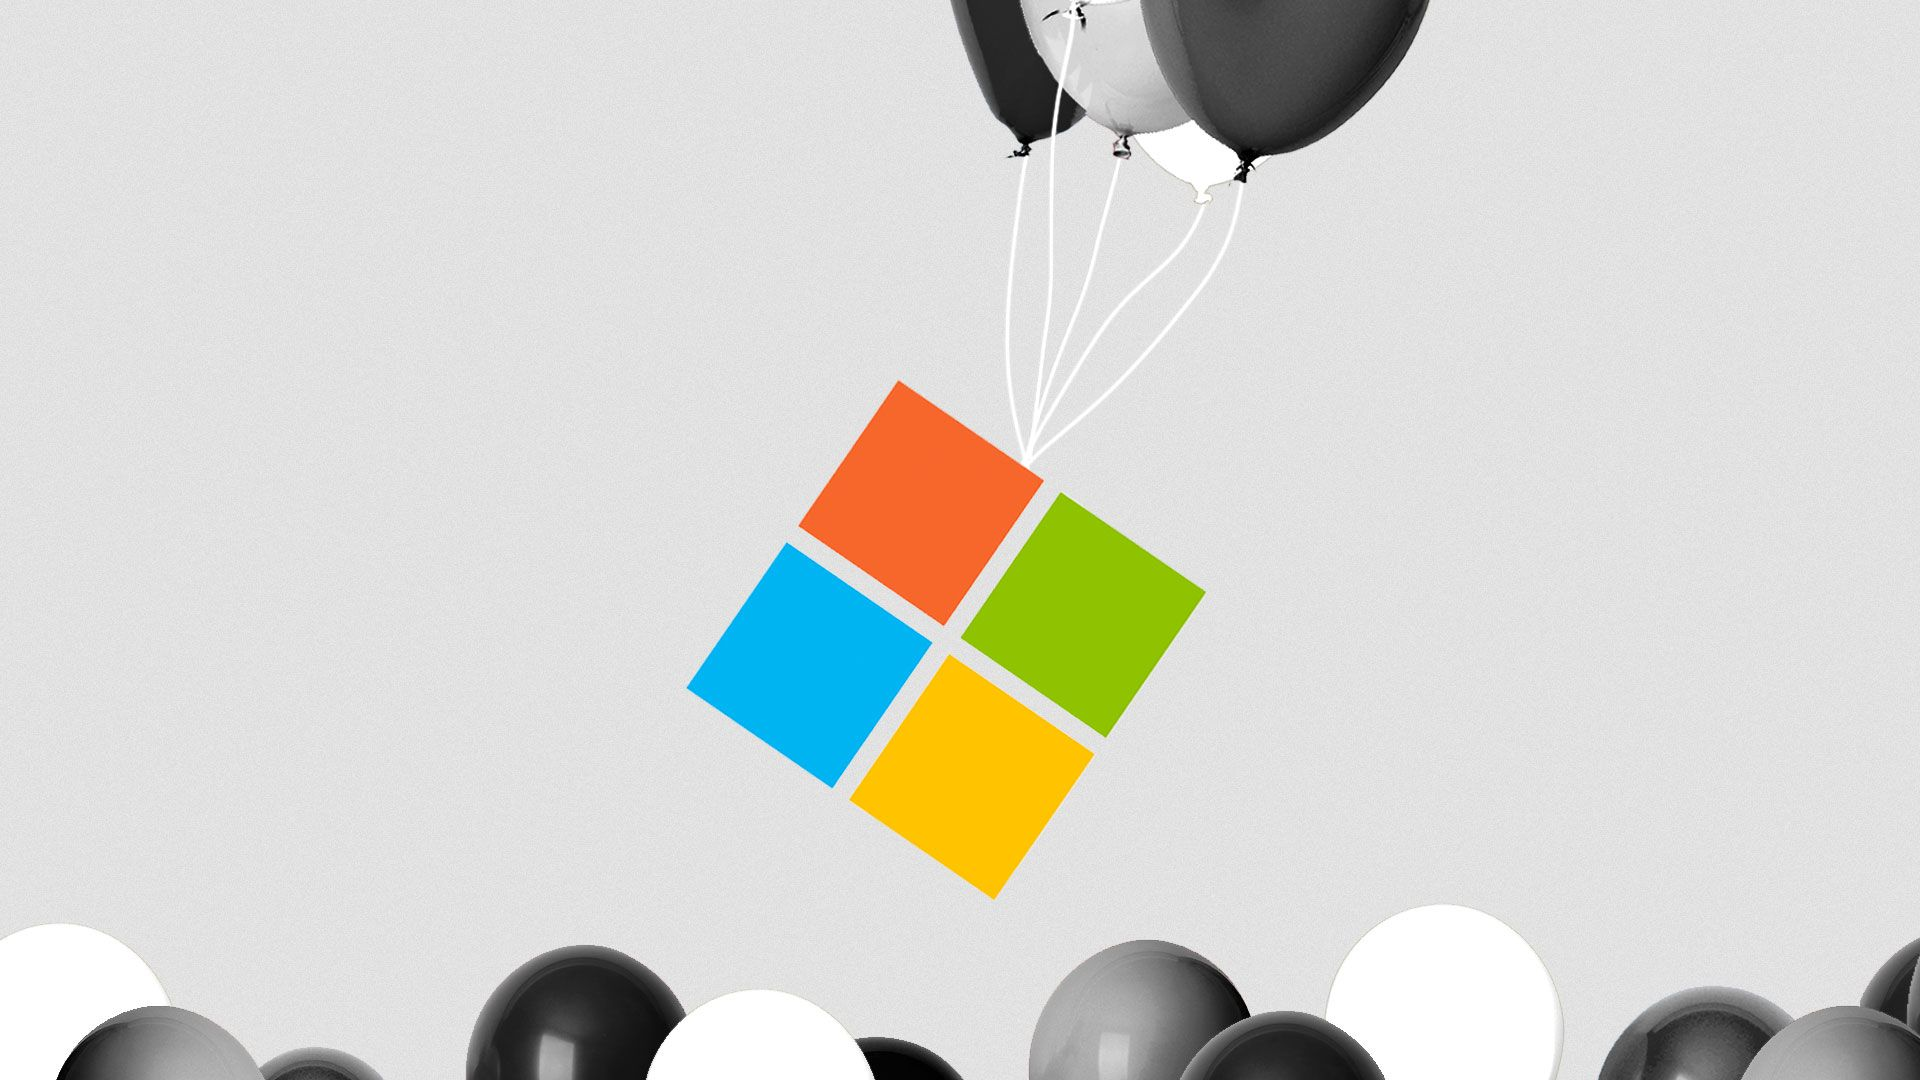 Illustration of balloons carrying the Microsoft logo up and away over other balloons.